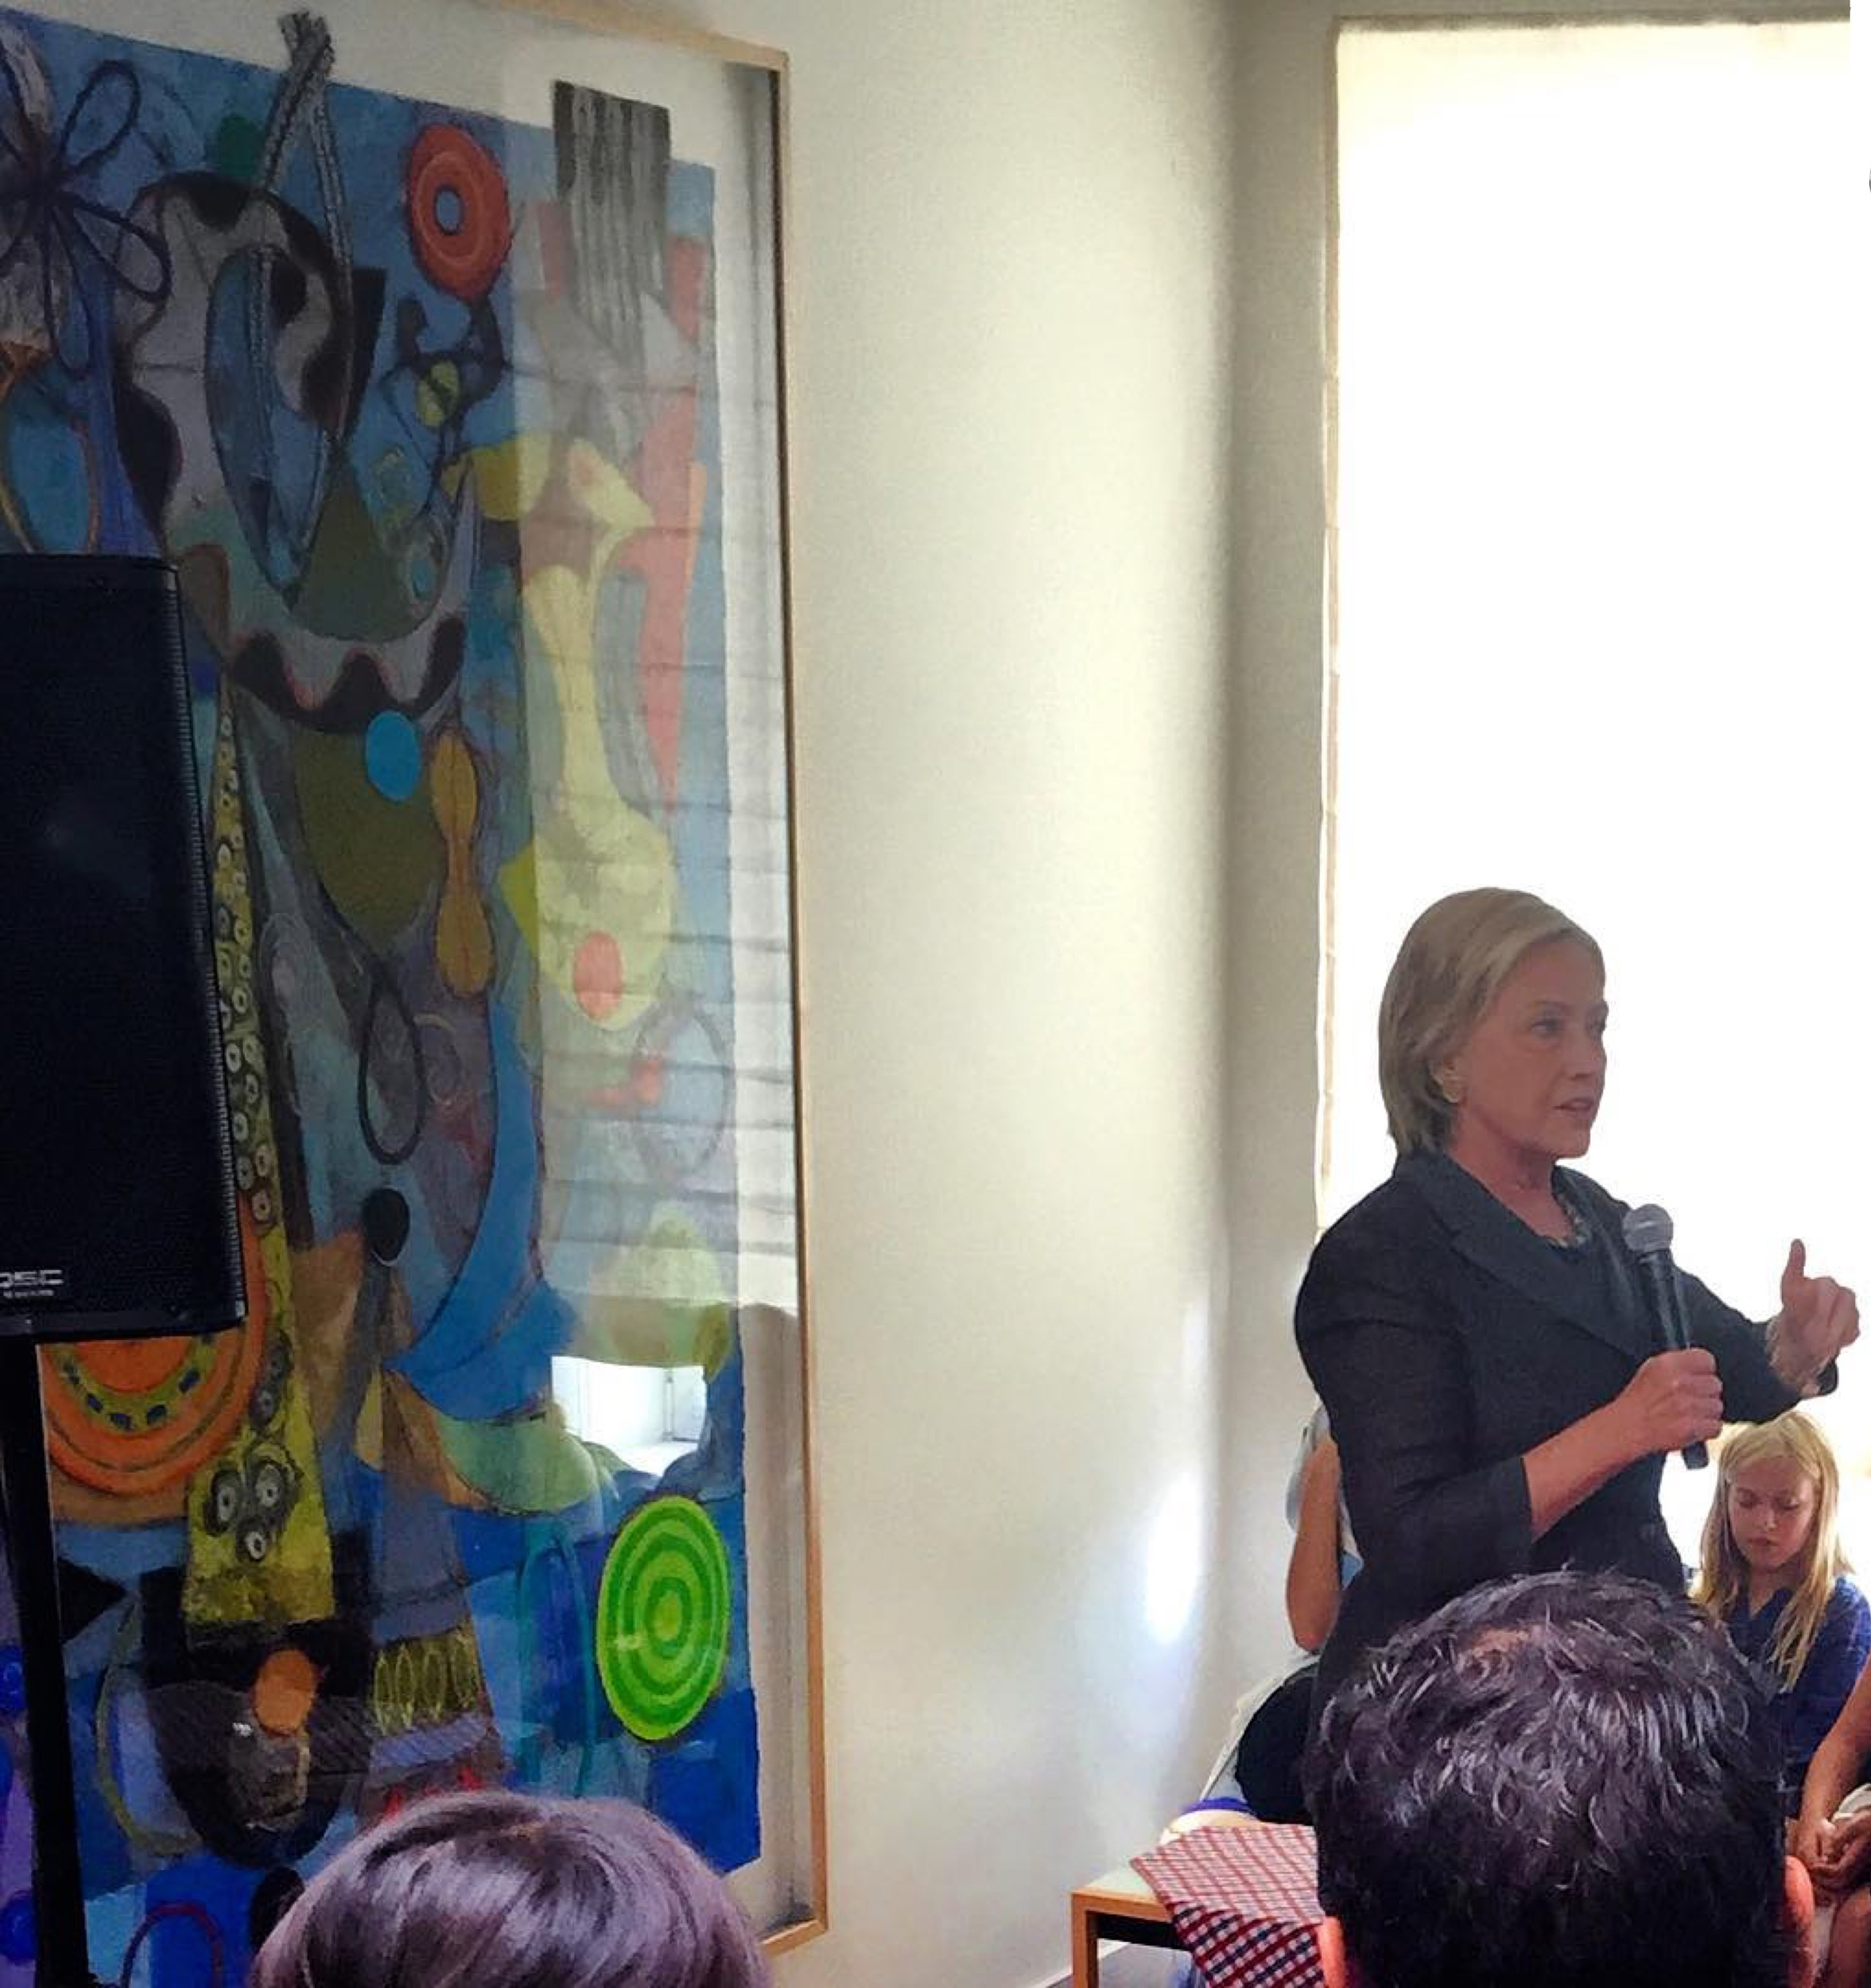 hillary clinton  speaking in nyc this past weekend at a private residence in front of gallery artist  geraldine neuwirth' s large collage.  new collages just arrived for her solo exhibition in november at the gallery.